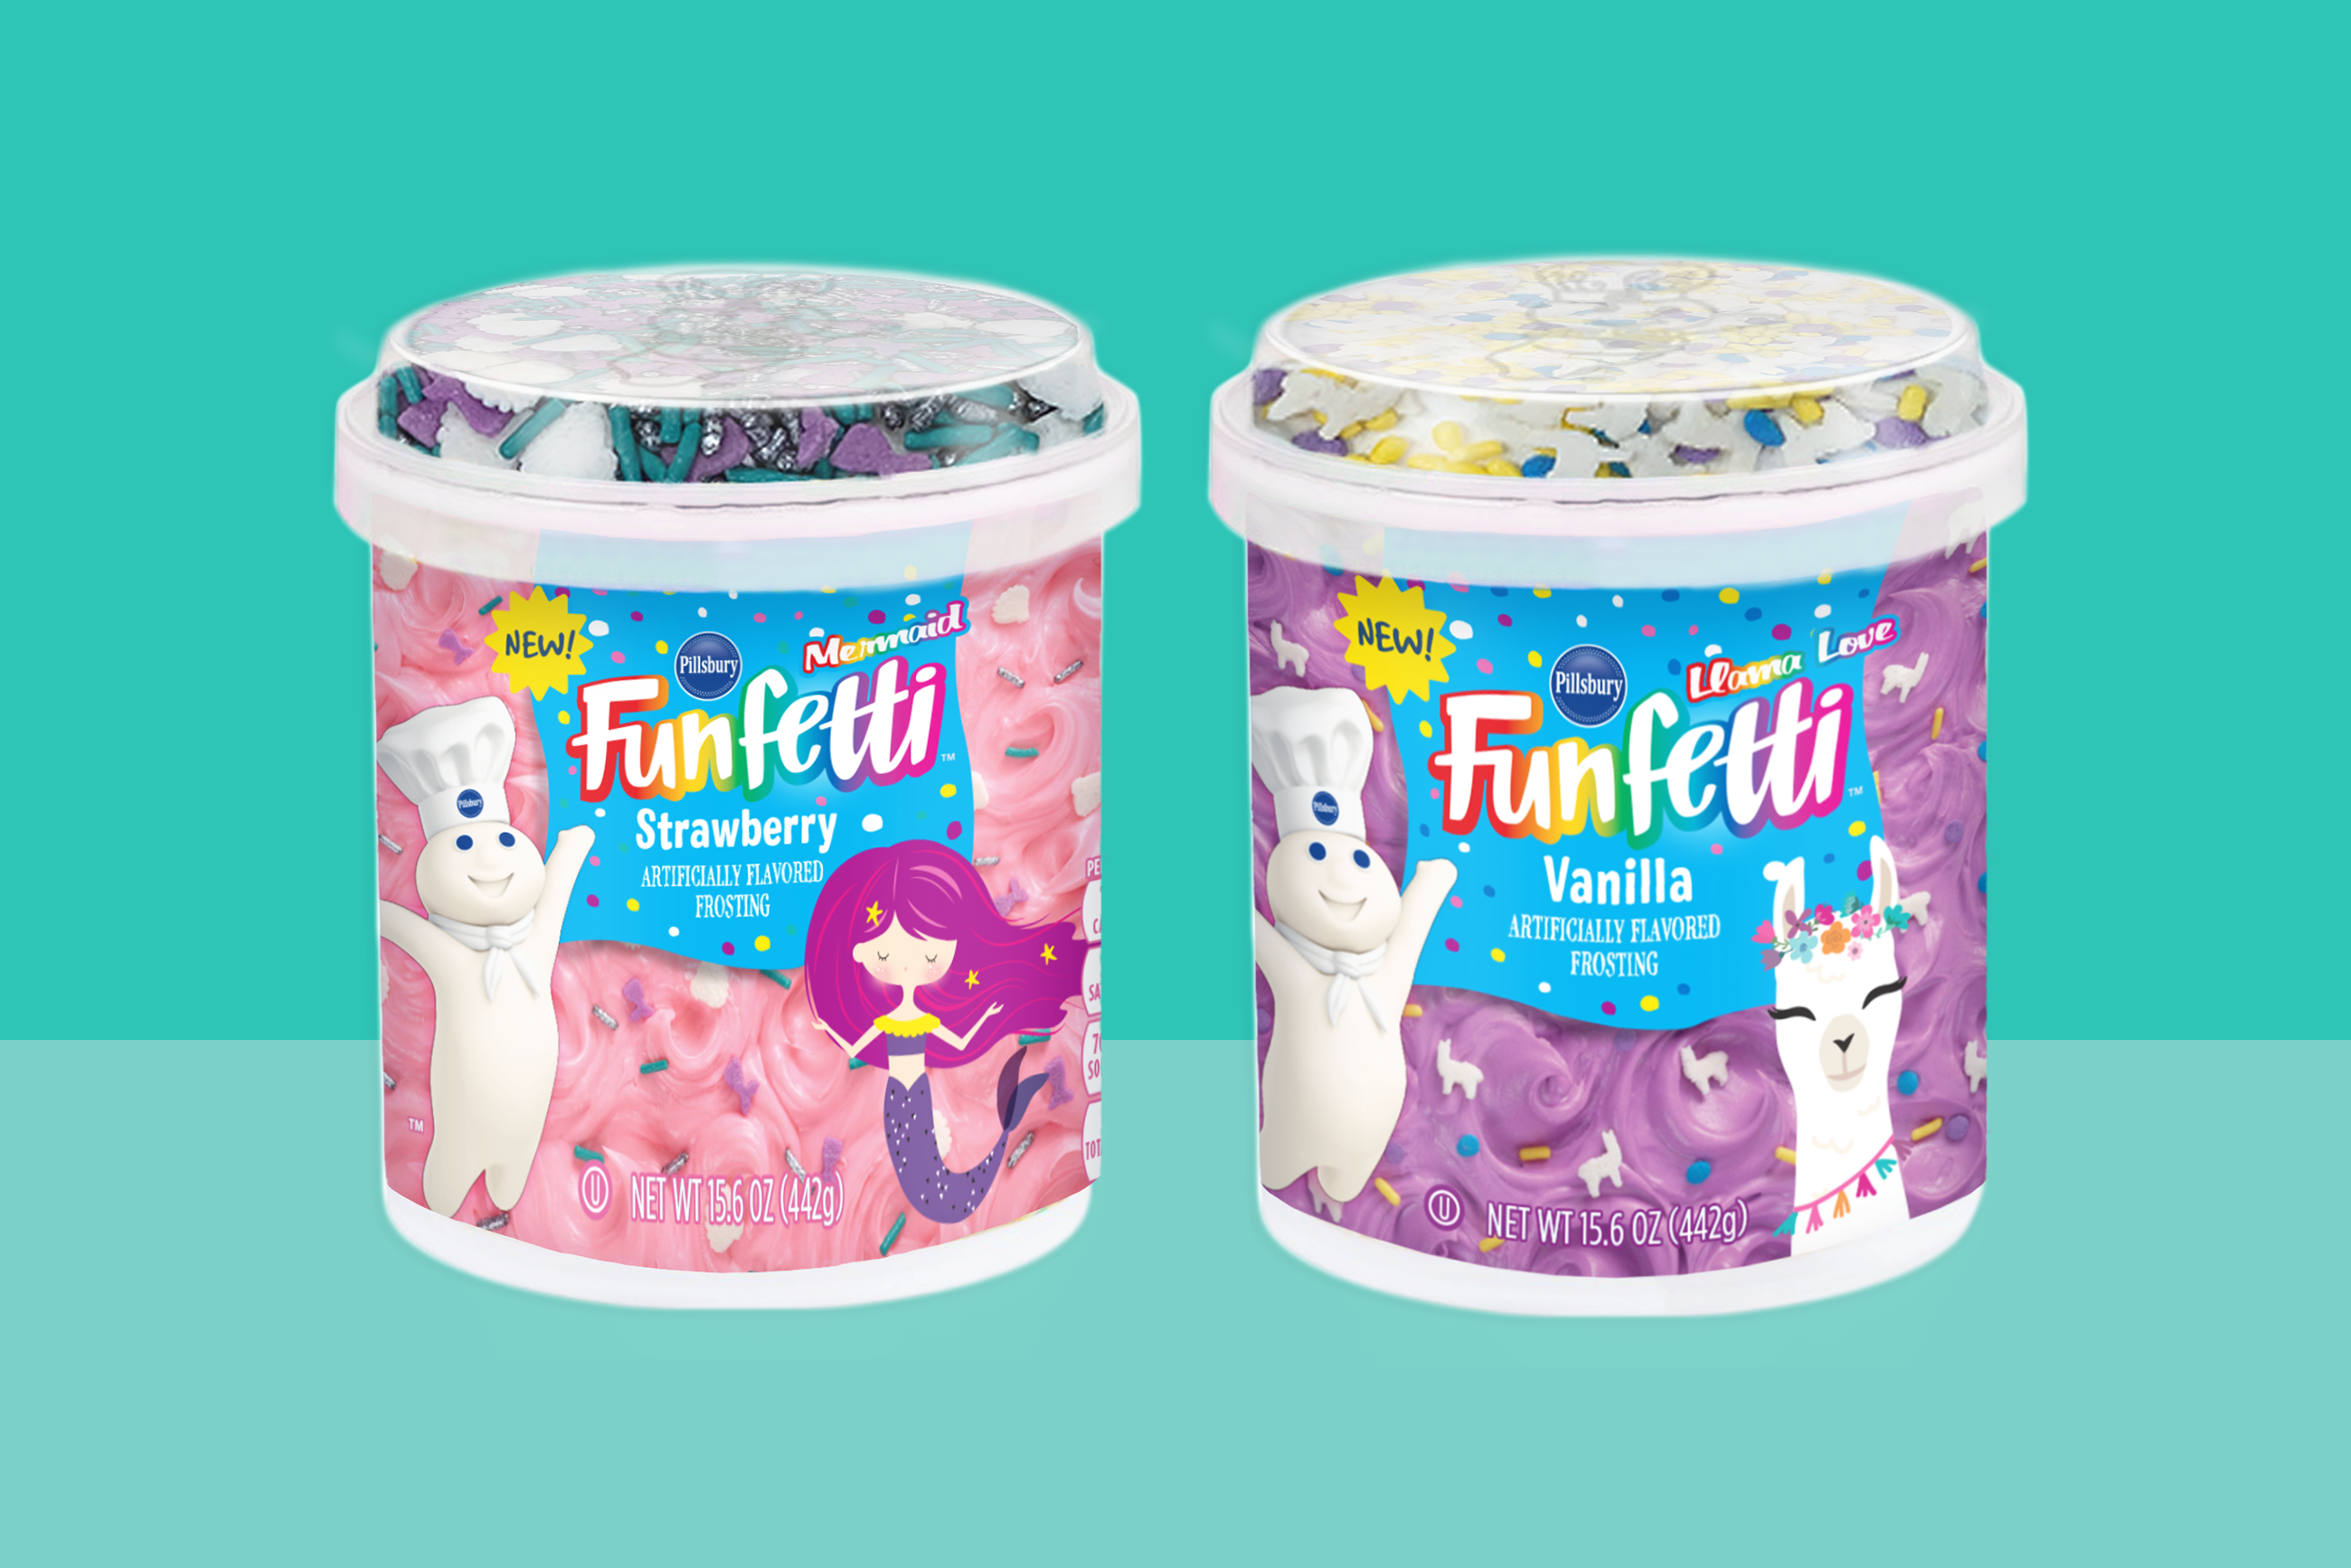 two containers of Pillsbury's Funfetti mermaid and llama frostings on a two-tone teal background